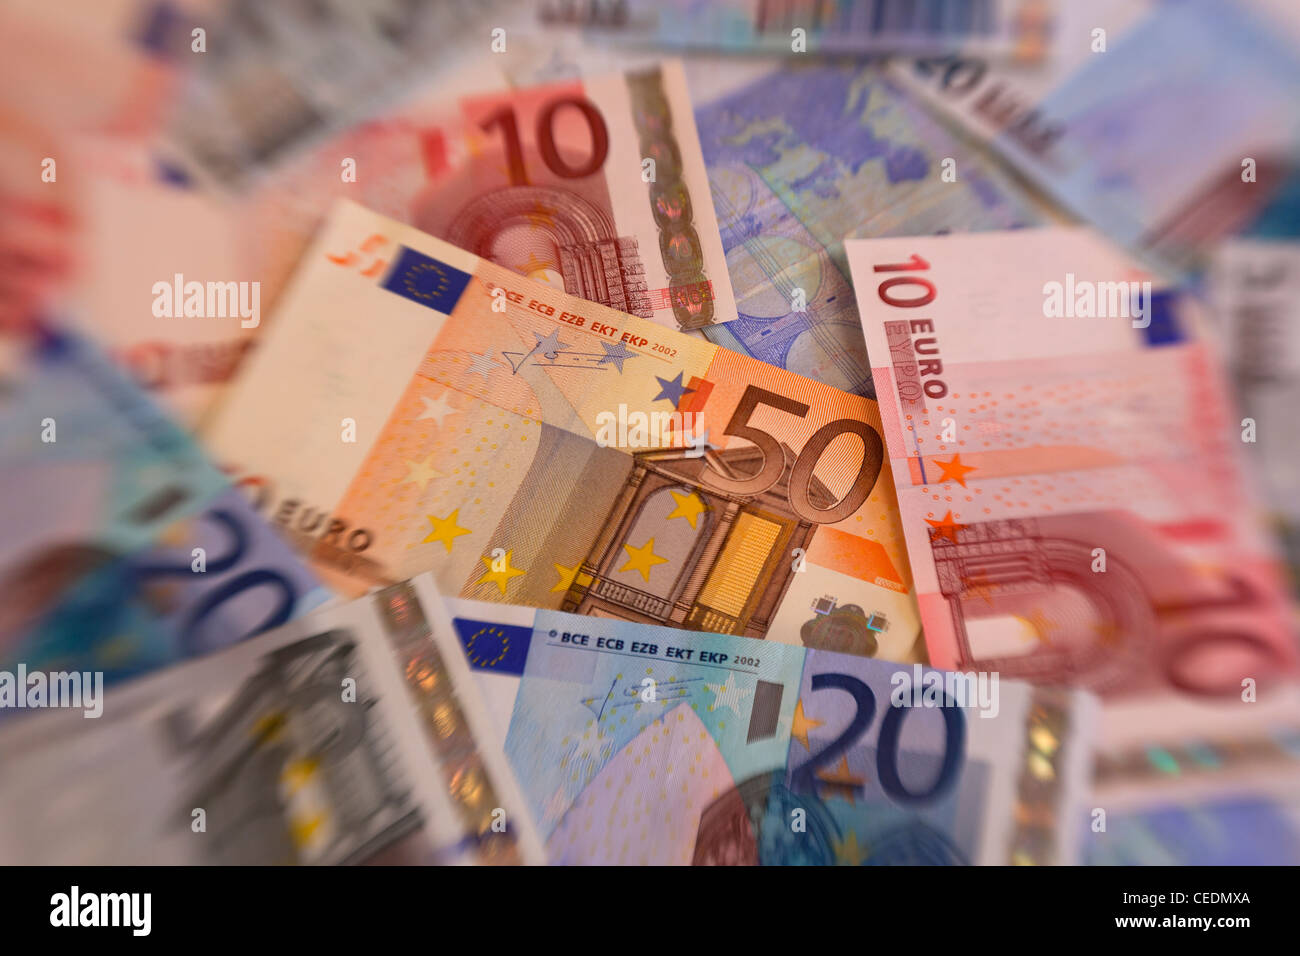 A pile of Euros currency money notes - Stock Image